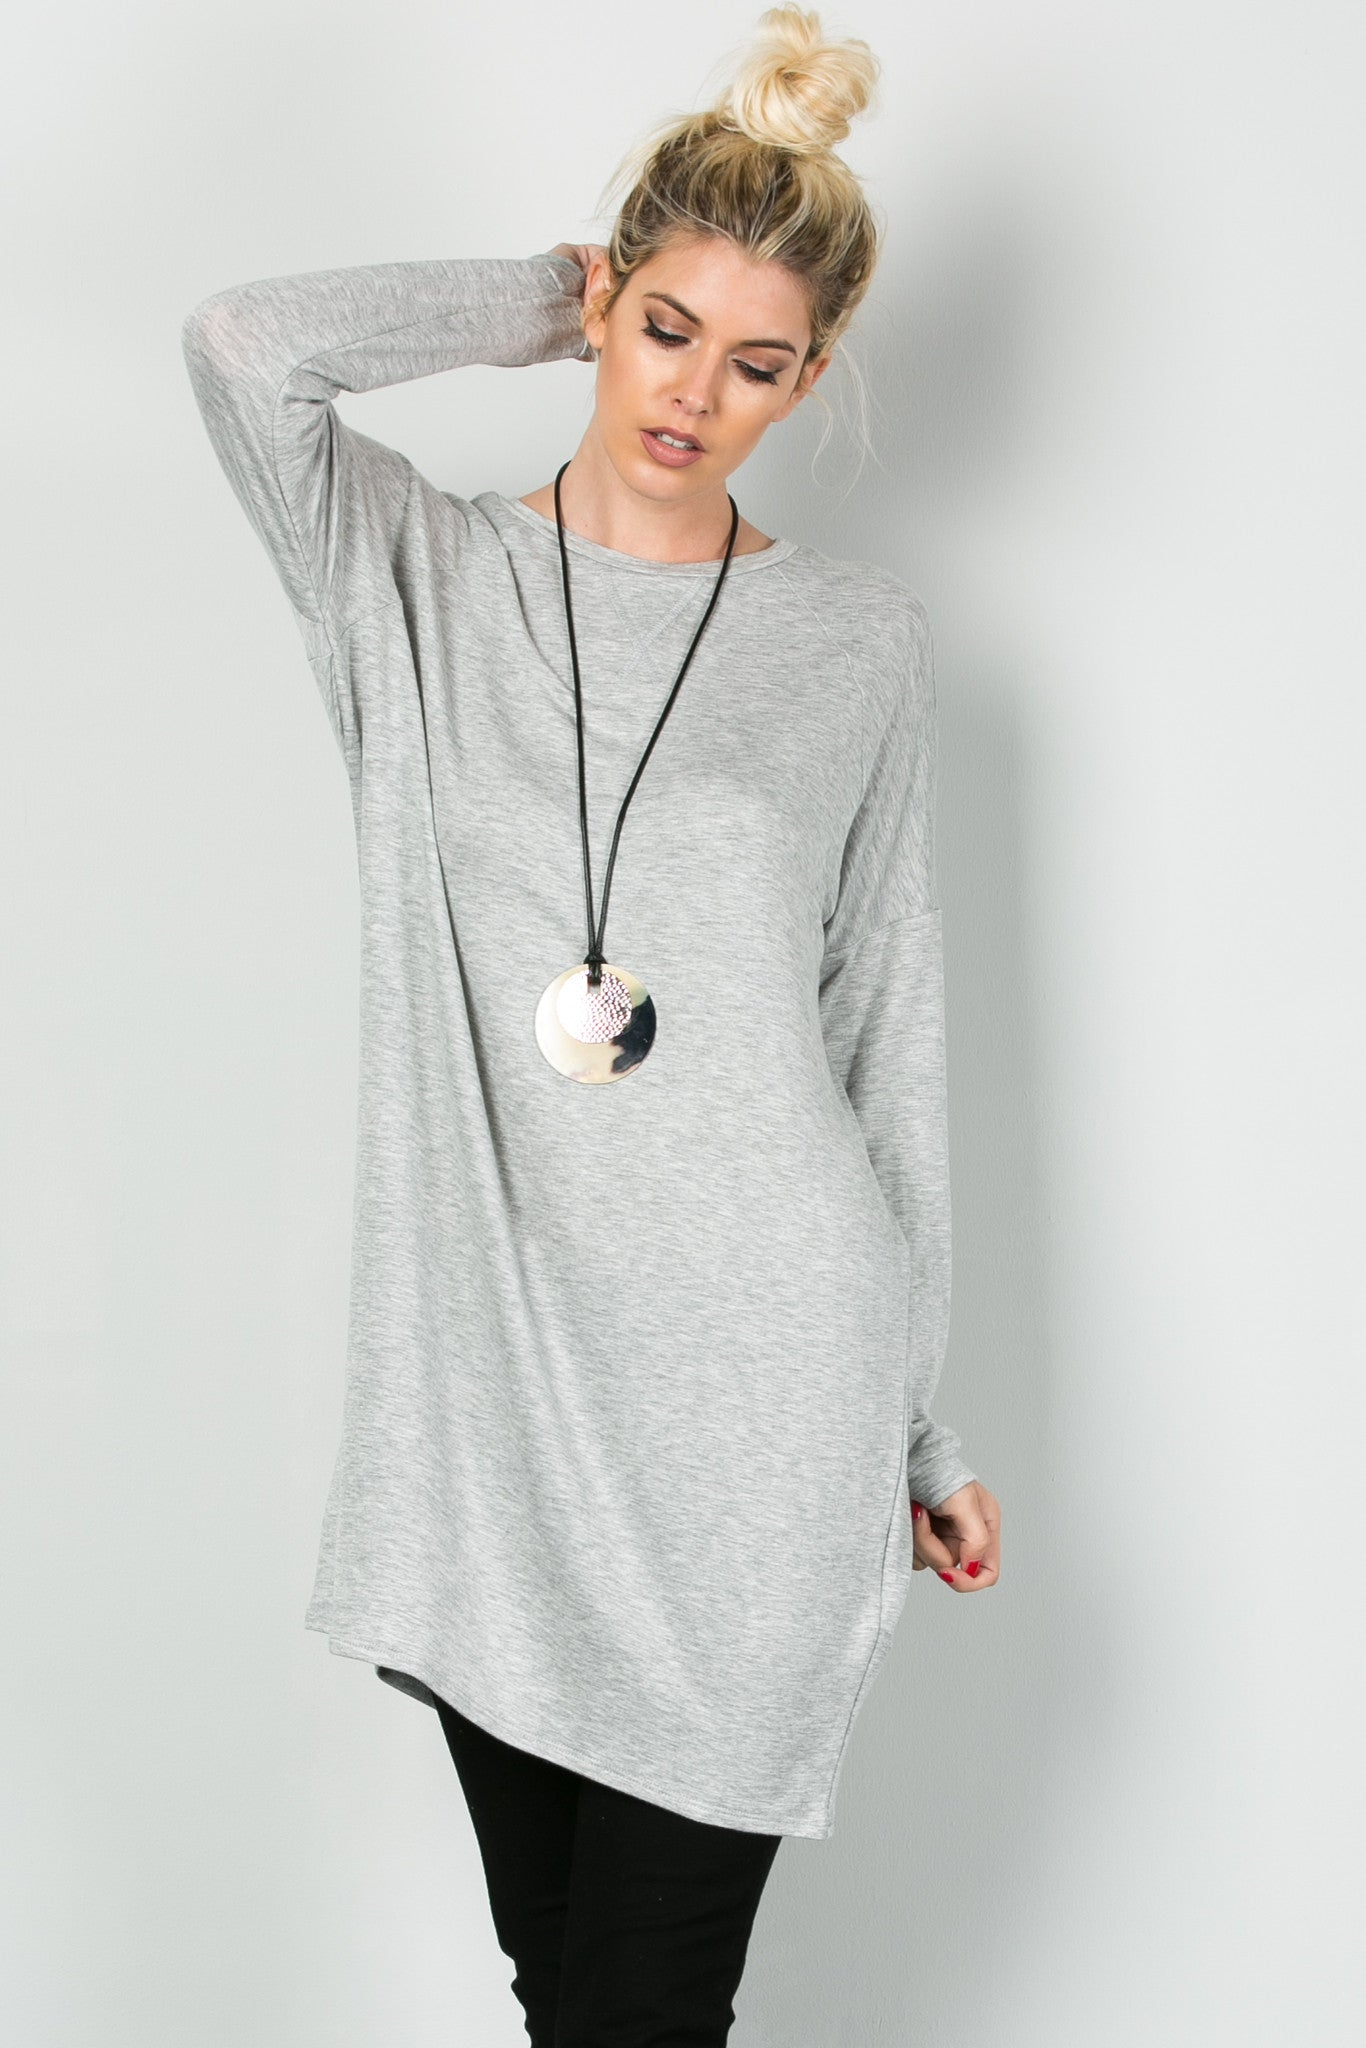 Classic Lazy Top Heather Grey - Tunic - My Yuccie - 1